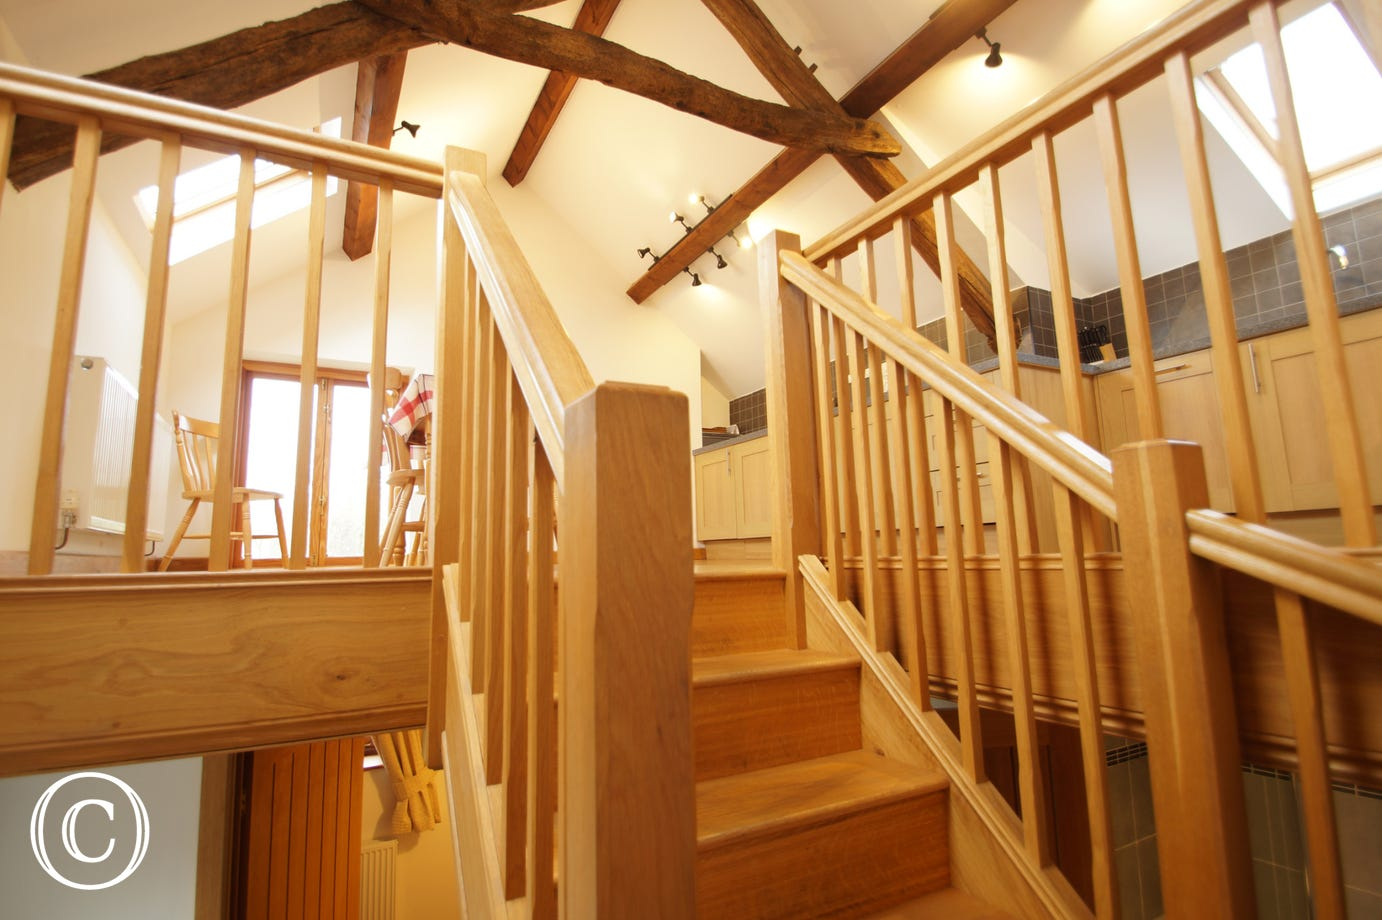 Upstairs living area leading down to the ground floor bedrooms and bathroom